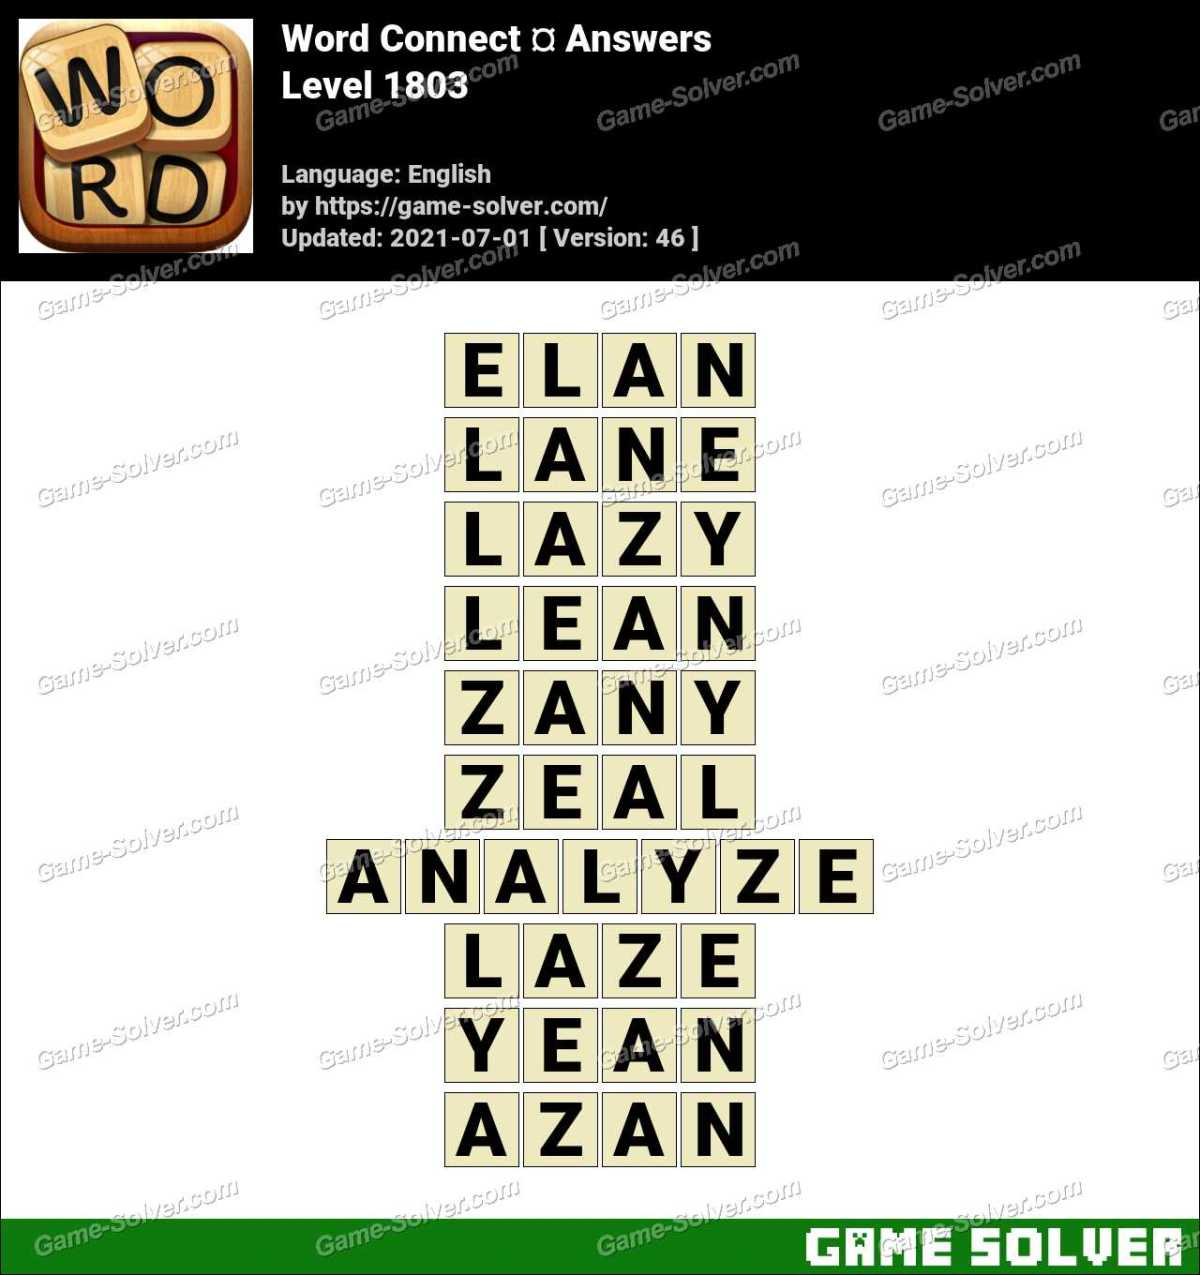 Word Connect Level 1803 Answers